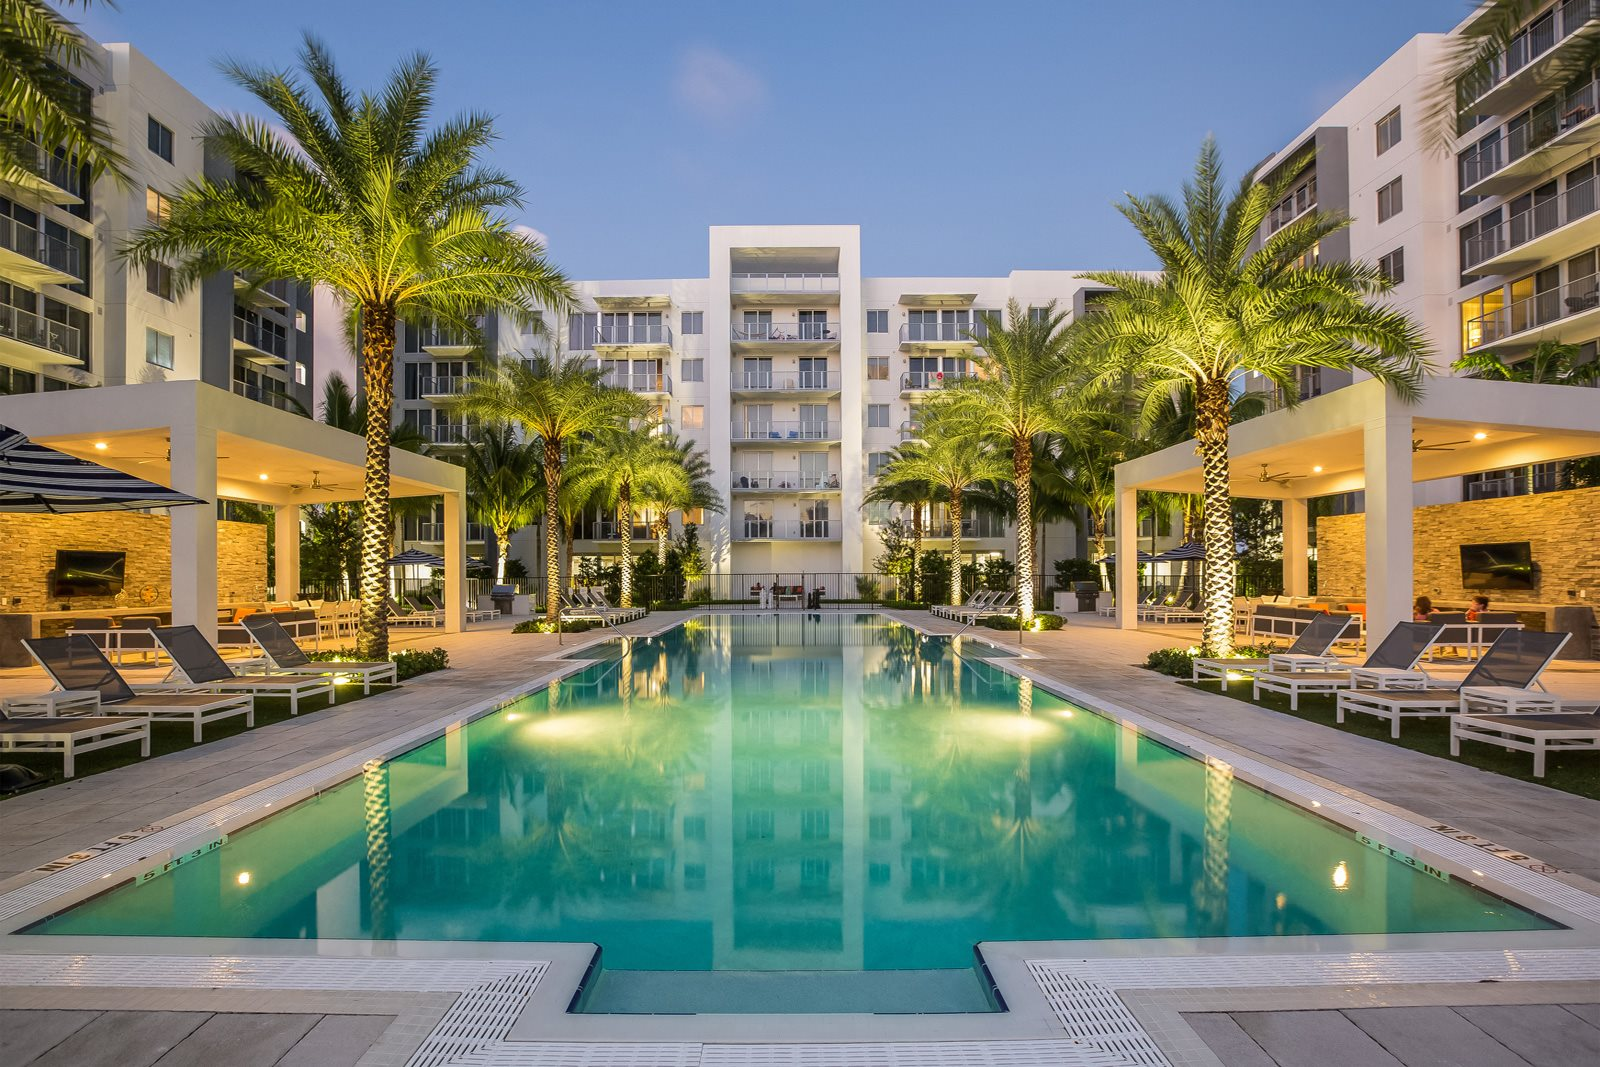 Renovated Apartment Homes Available at Allure by Windsor, 6750 Congress Avenue, Boca Raton